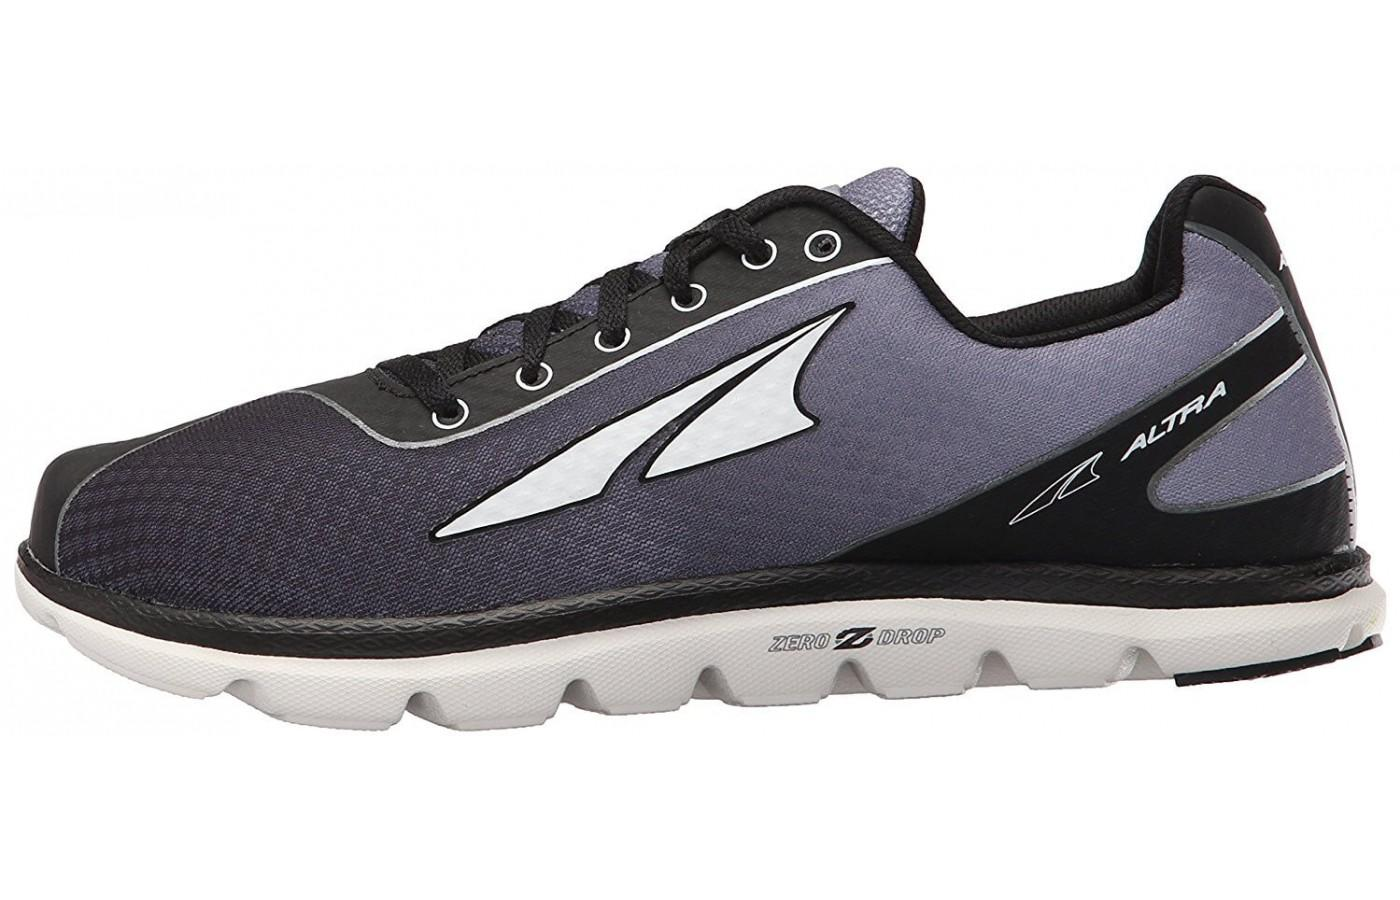 Sleek design of the lightweight Altra One 2.5